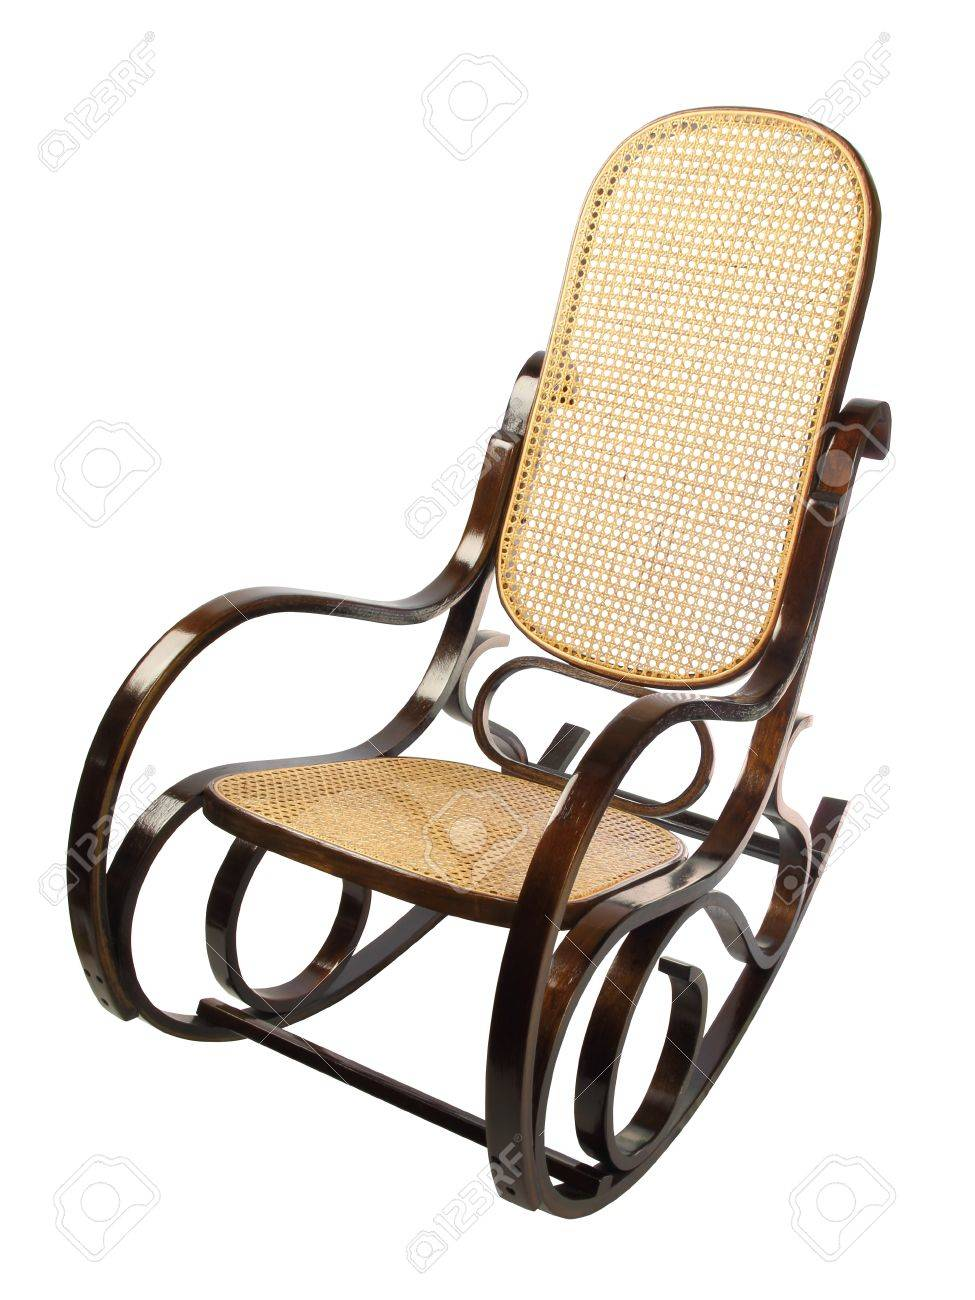 dark brown rocking chair with yellow braided back and seat Stock Photo - 9520113